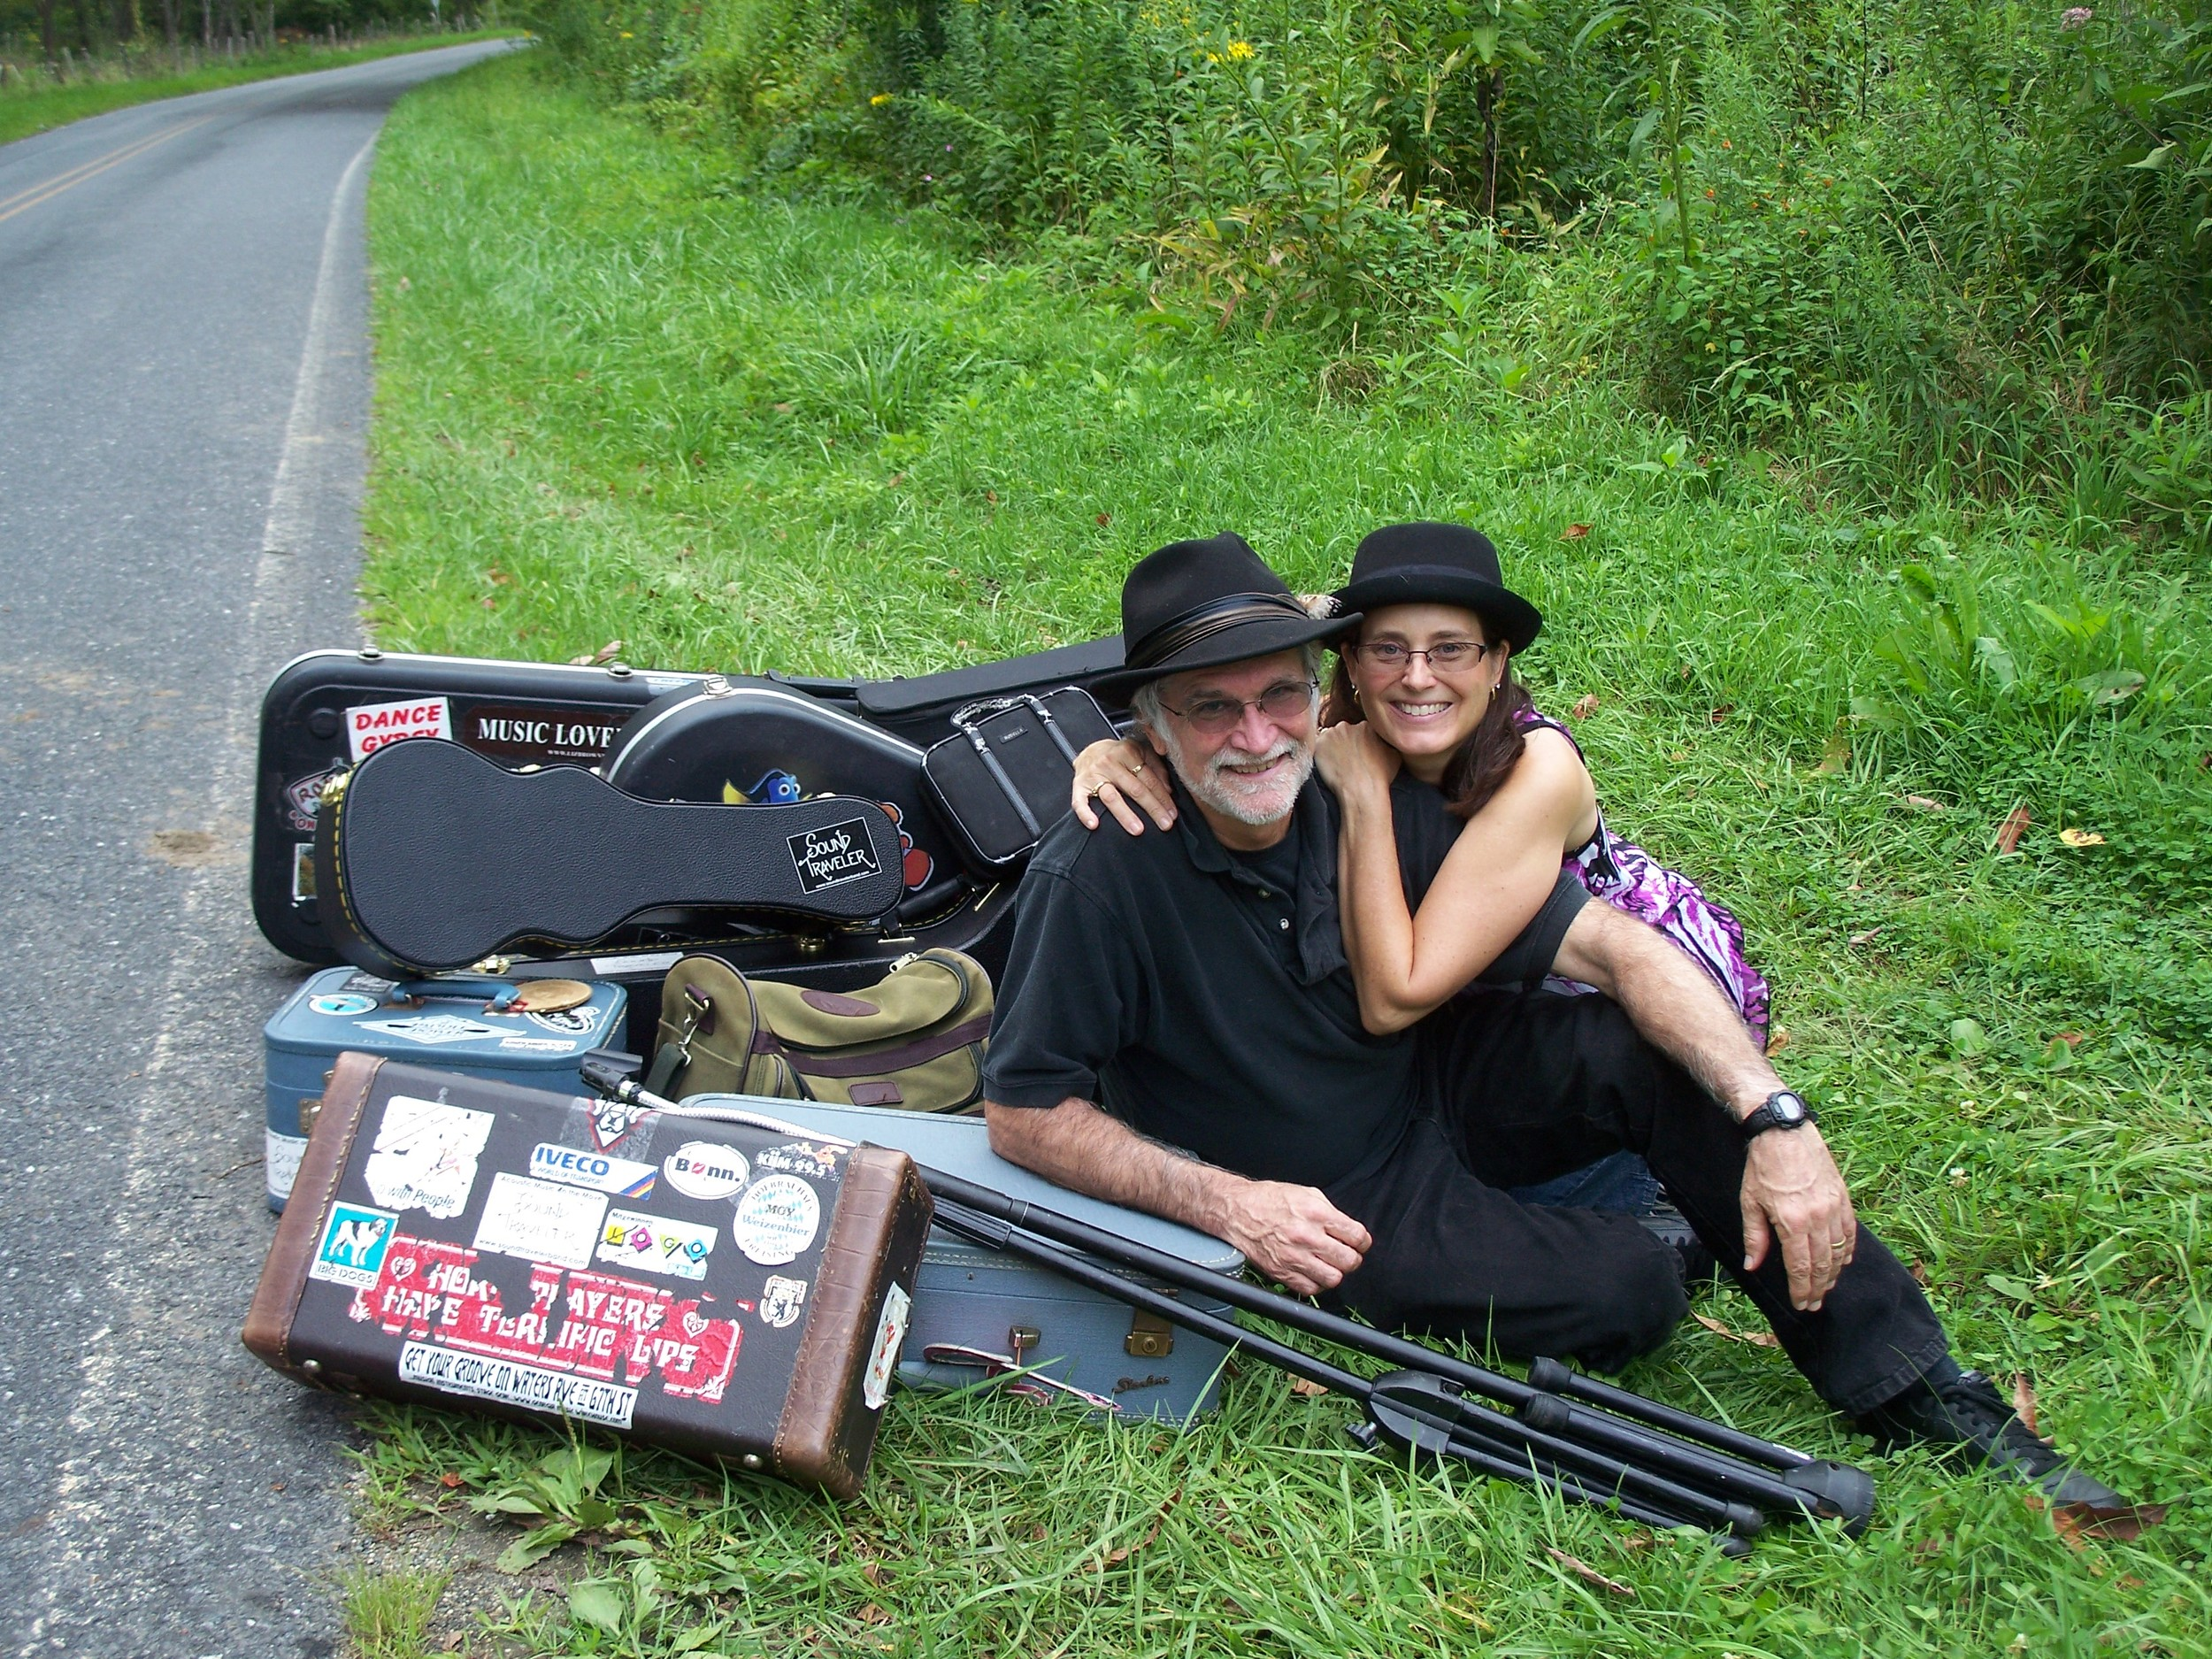 Travelin' Dreams Photo Shoot in Avery County, North Carolina!